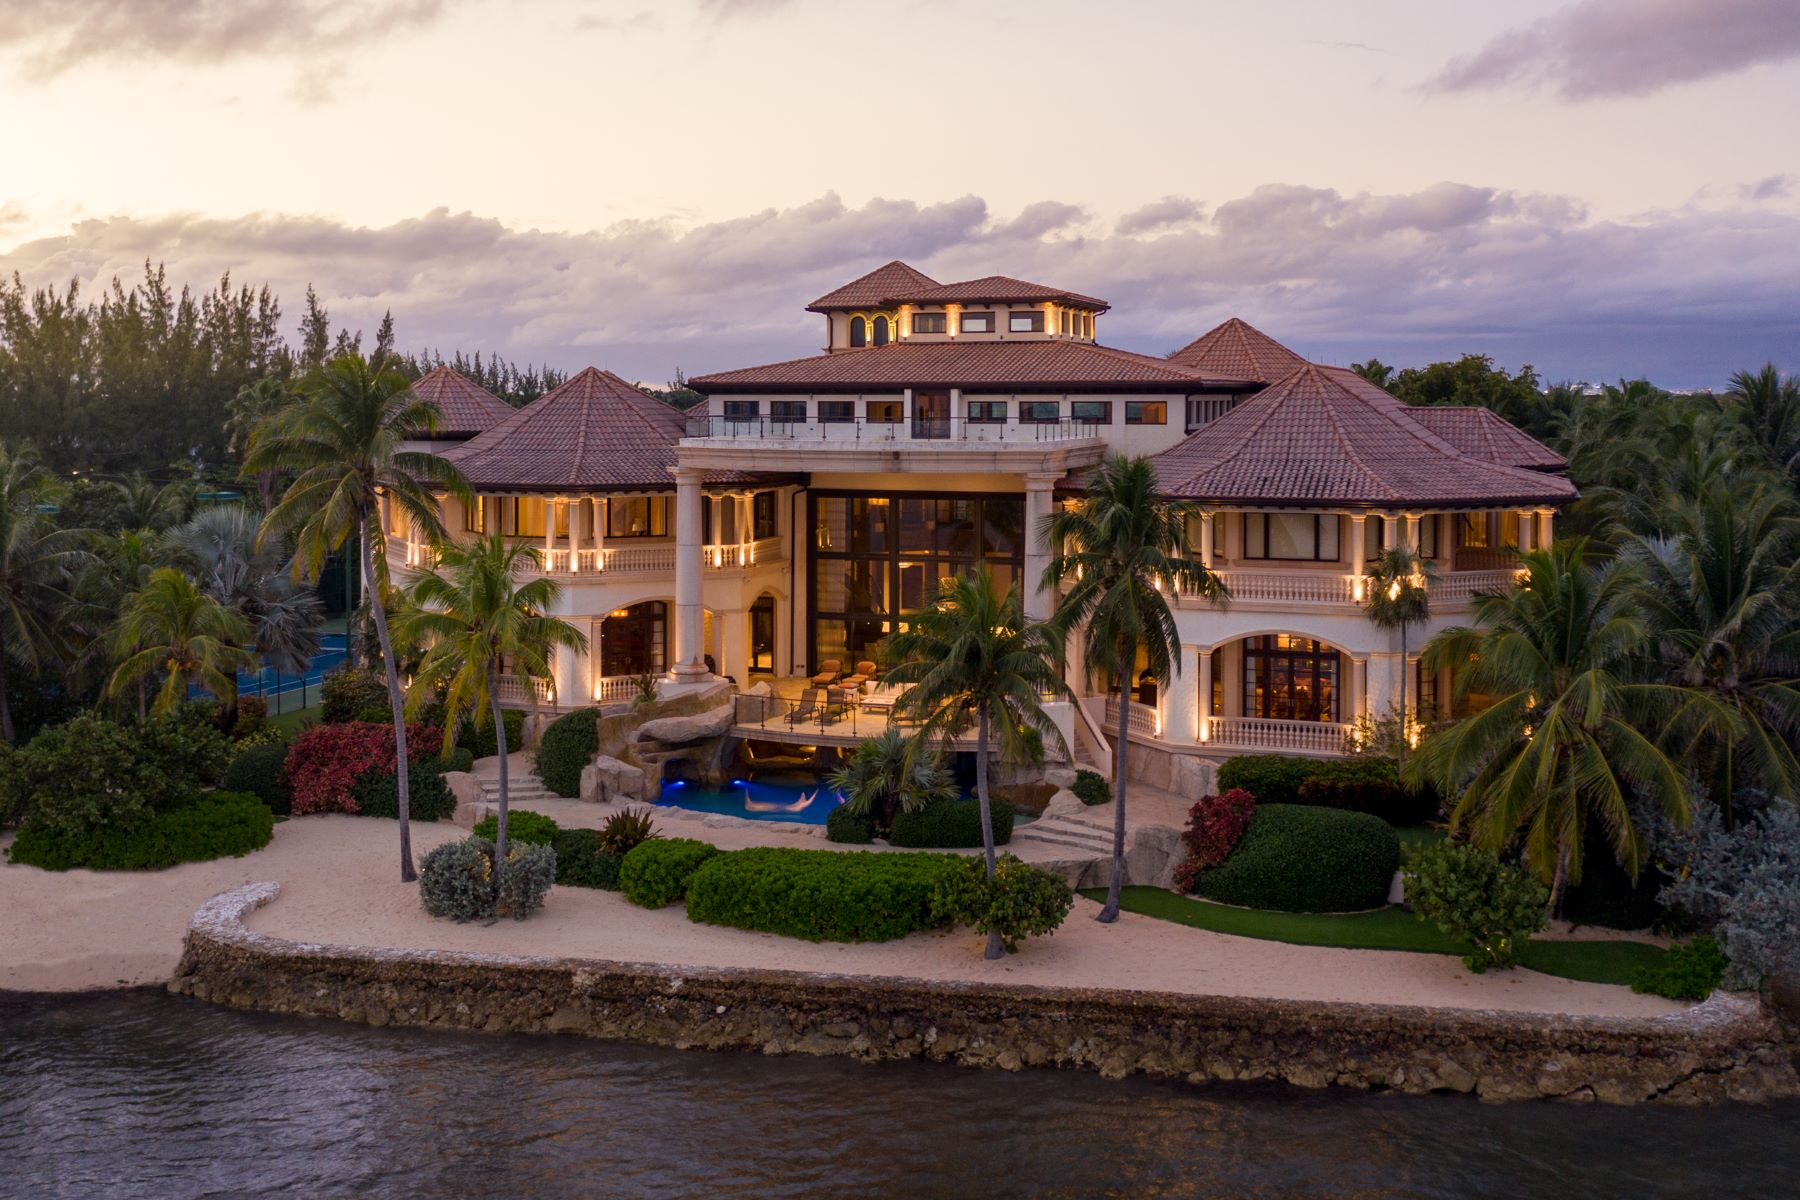 Single Family Homes for Sale at Castillo Caribe, Caribbean luxury real estate Castillo Caribe, South Sound Rd George Town, Grand Cayman KY1 Cayman Islands